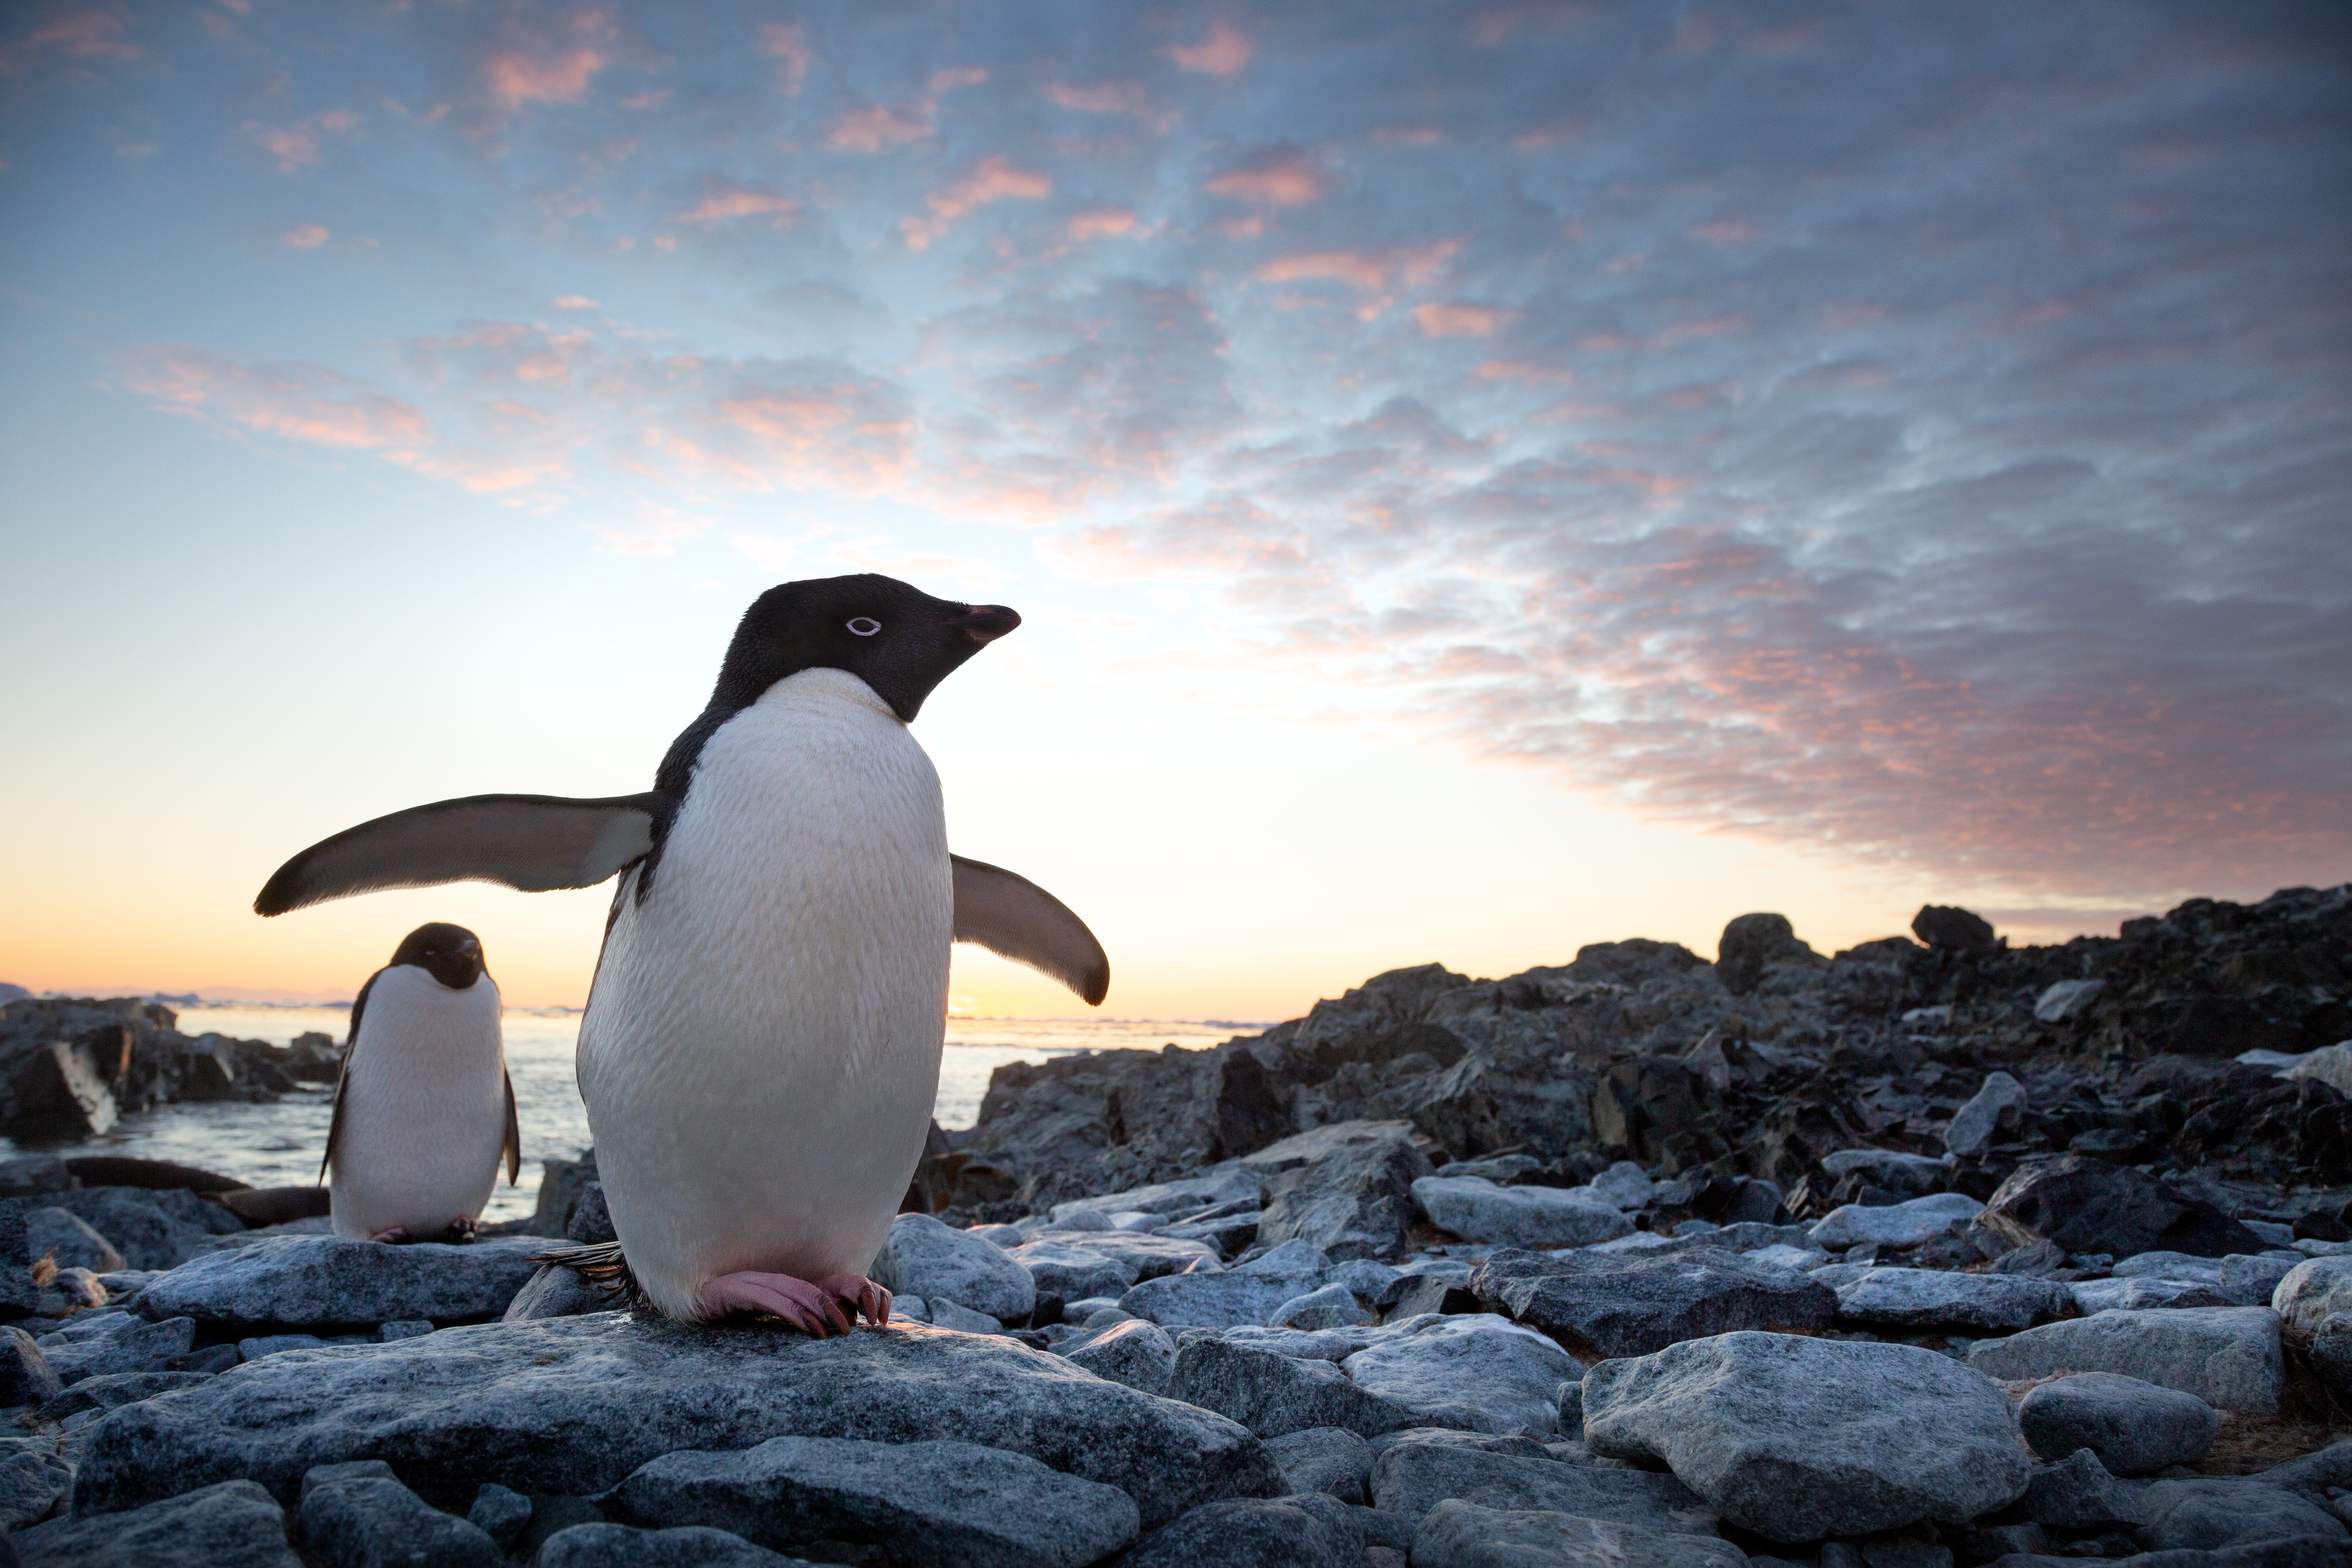 Exclusive: Watch two 'Penguins' fall in love (with Ed Helms narrating the sweet moment)